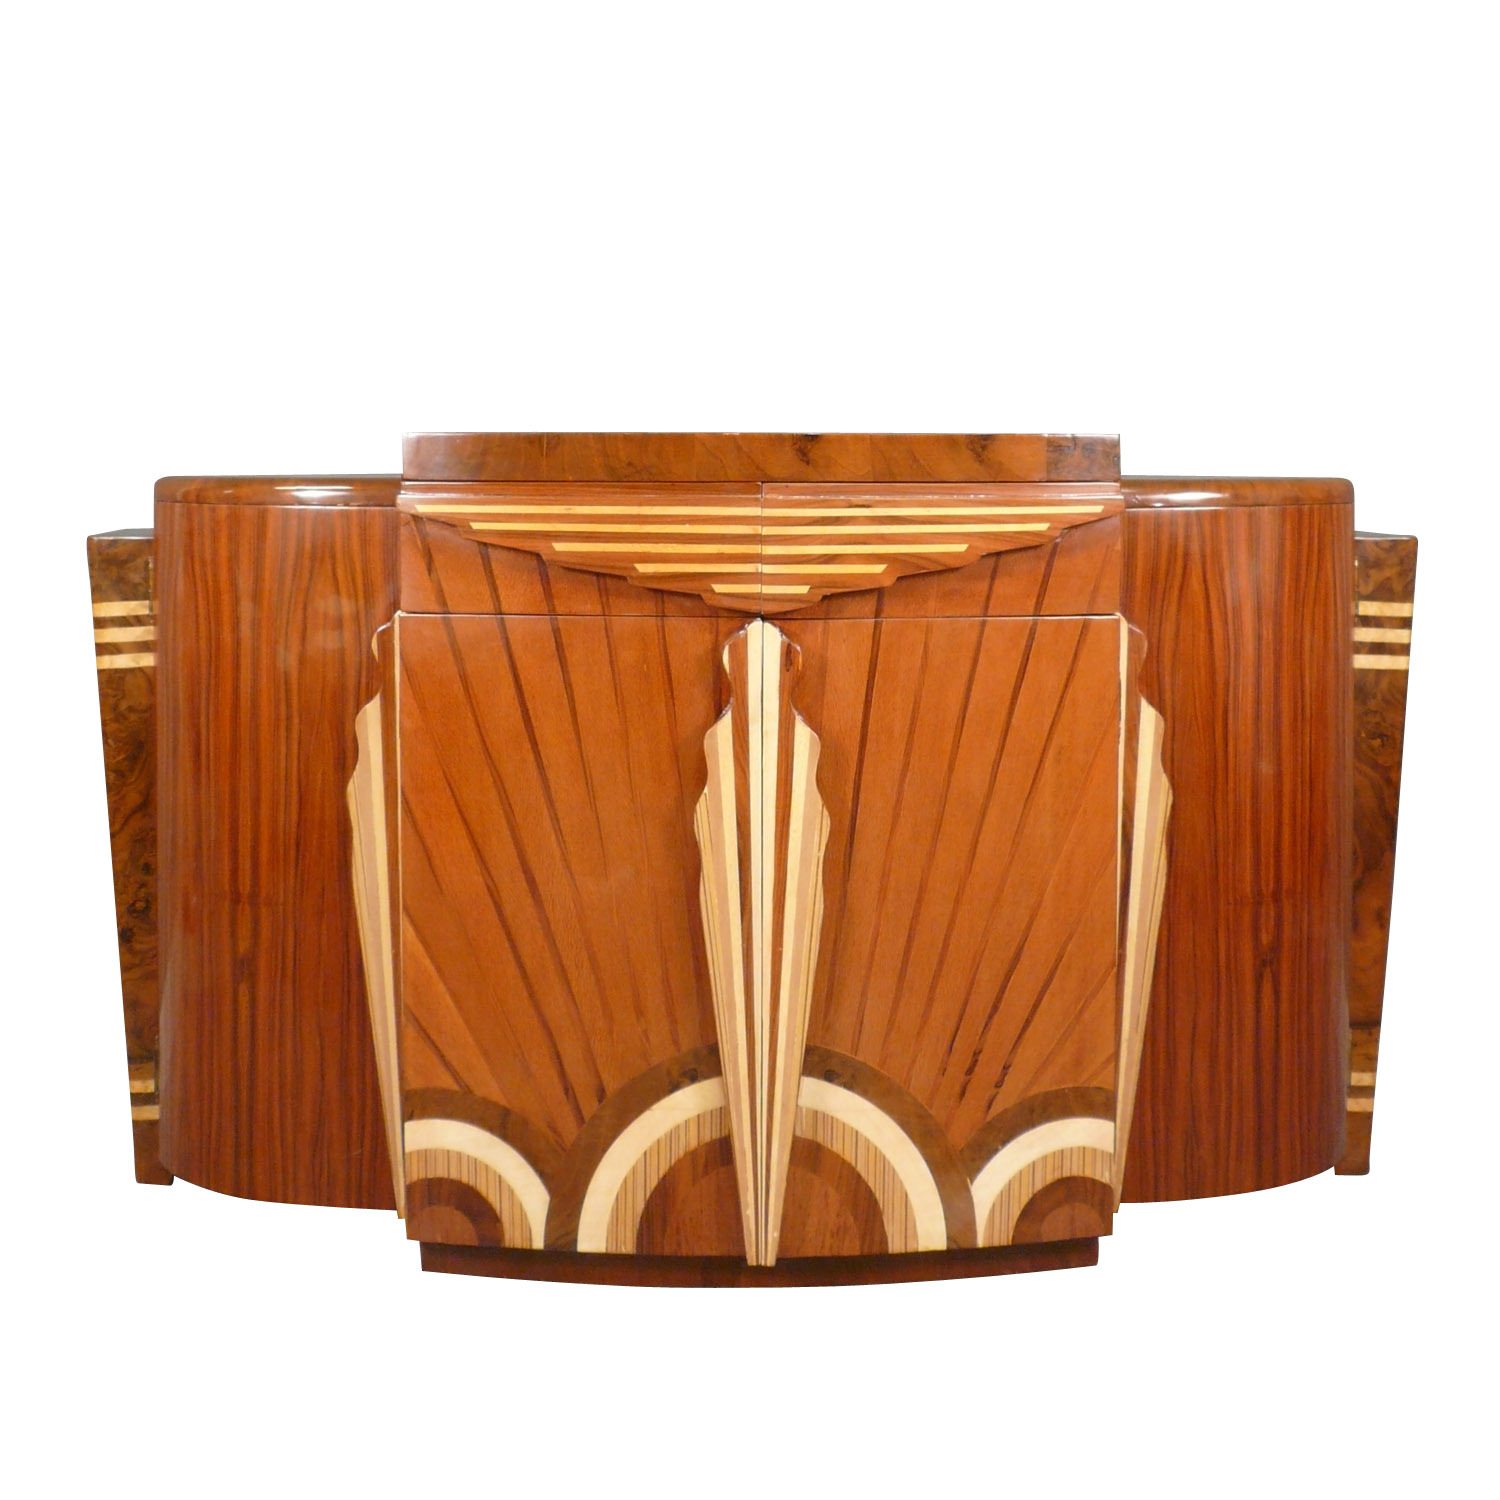 Meuble Art Deco Art Deco Furniture Photo Gallery Console Desk